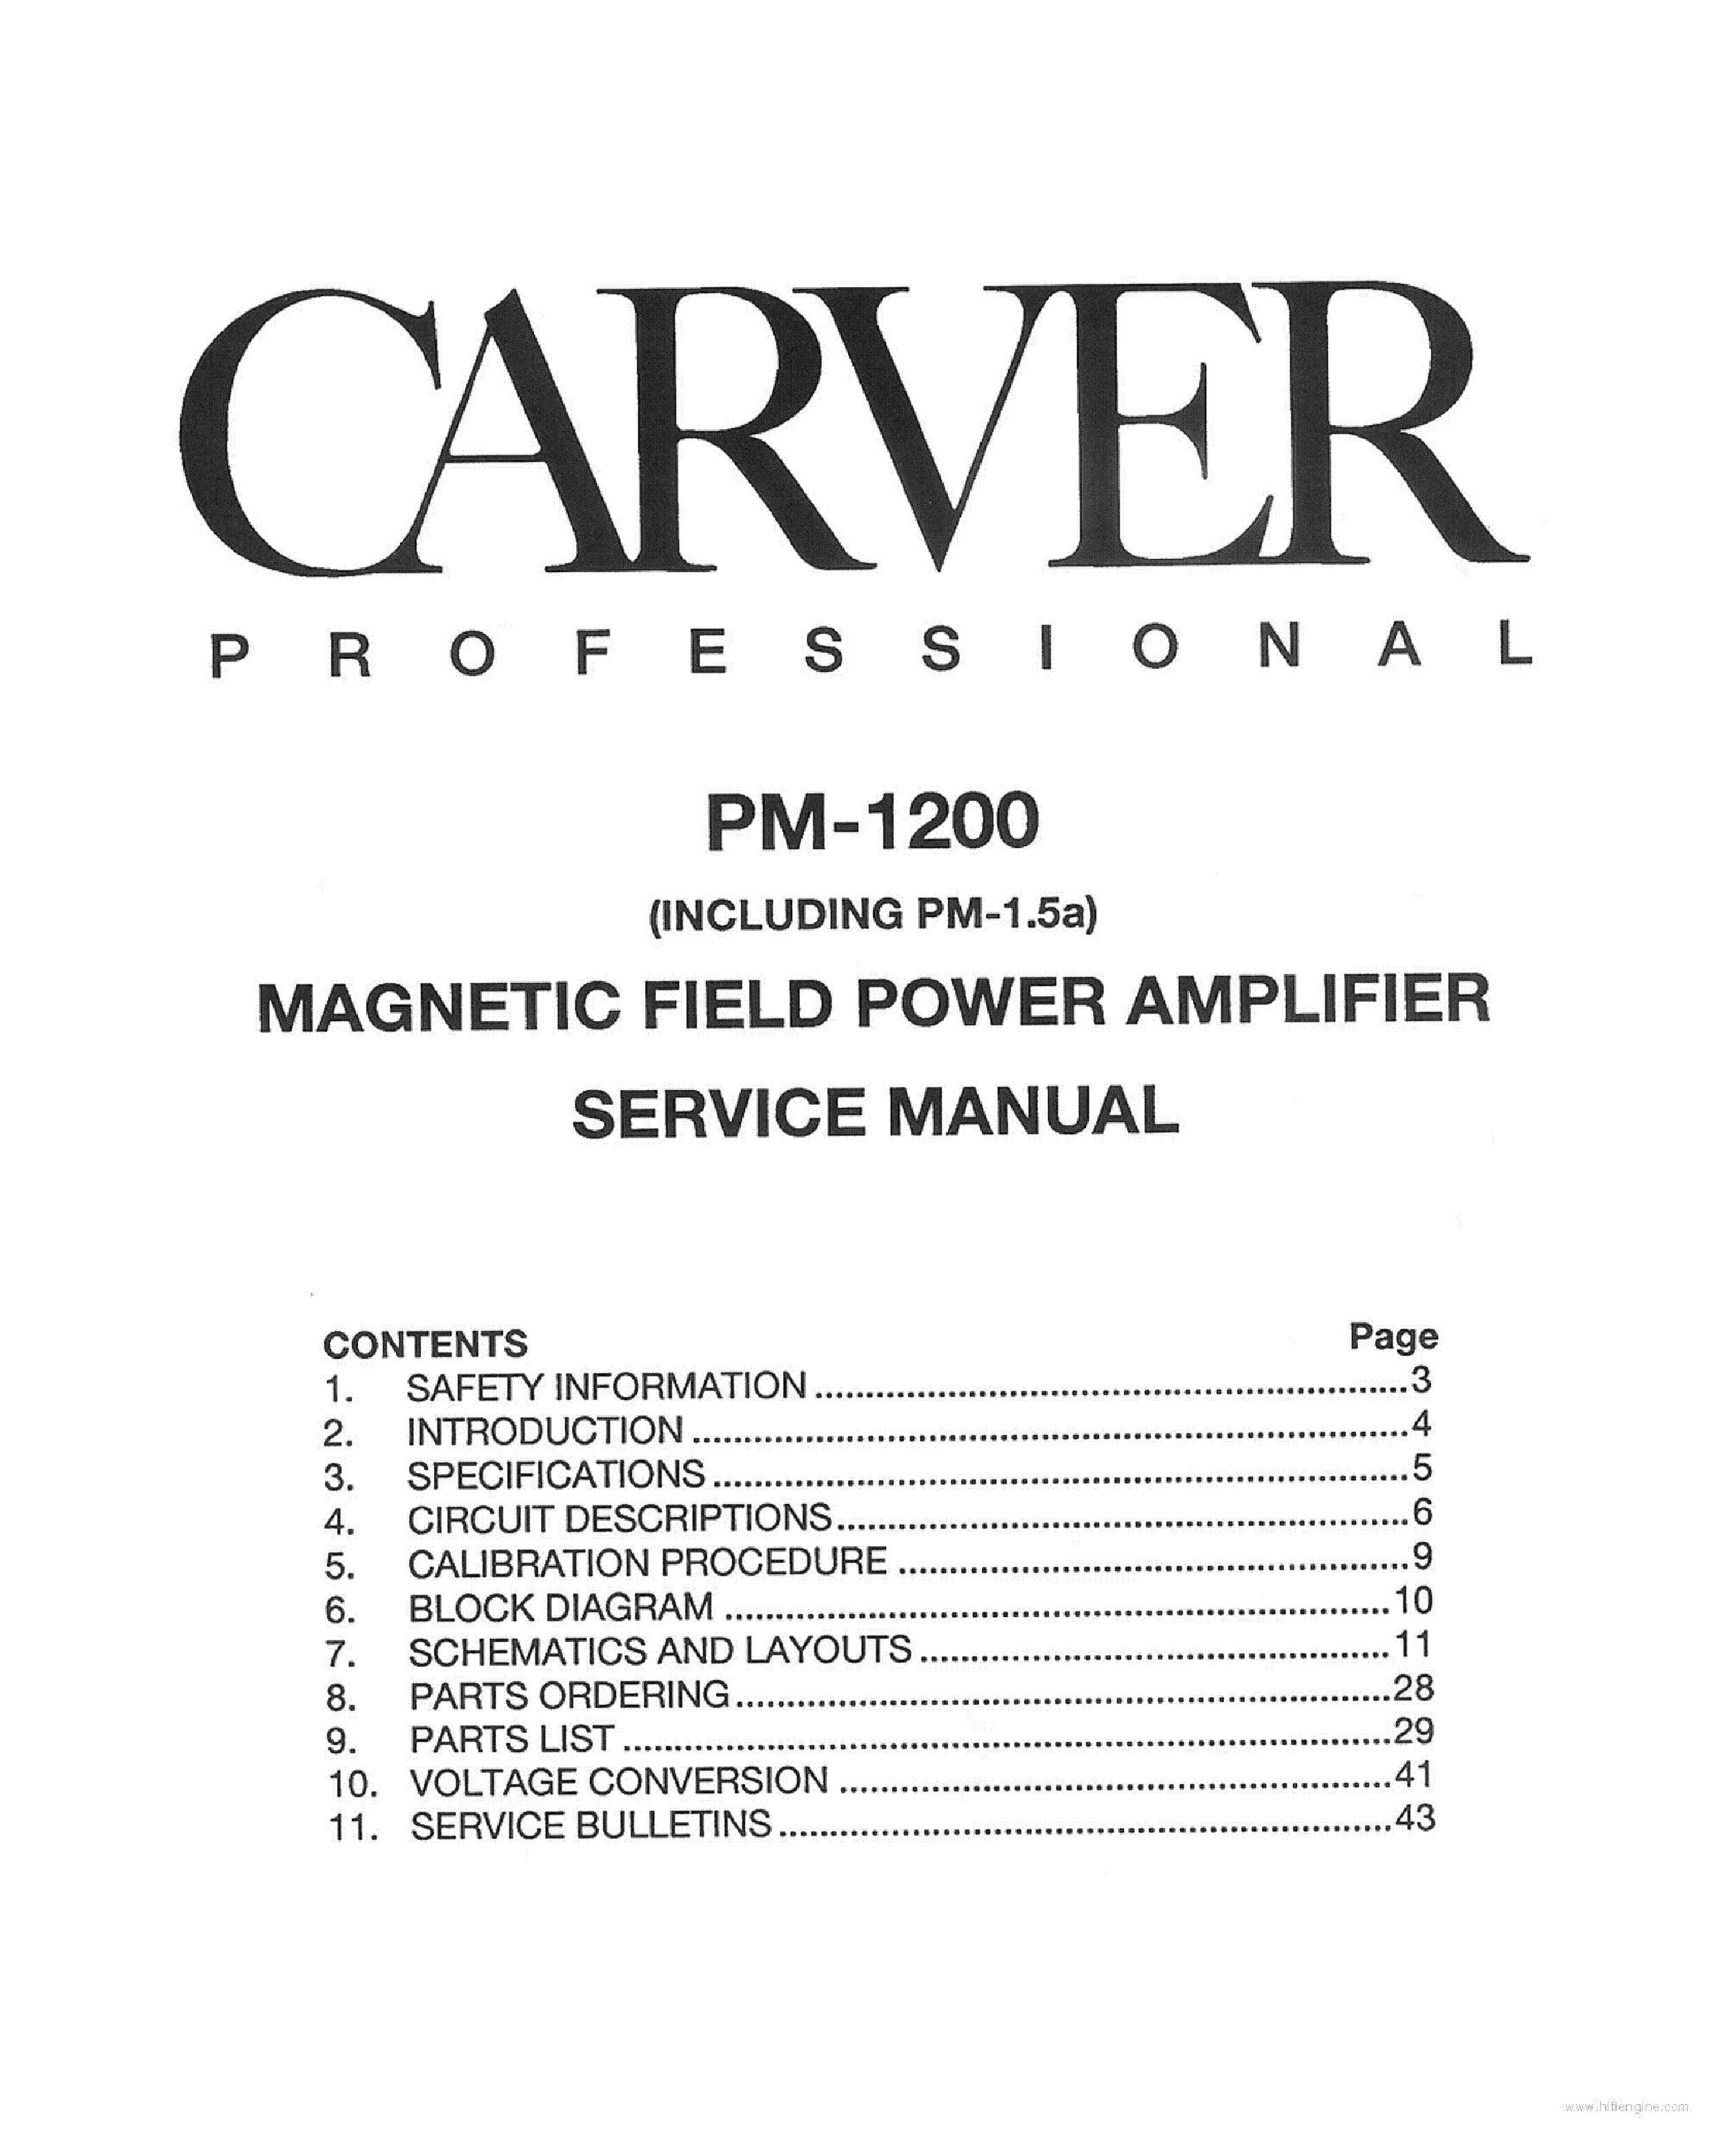 CARVER PM-1200 AMPLIFIER service manual (1st page)